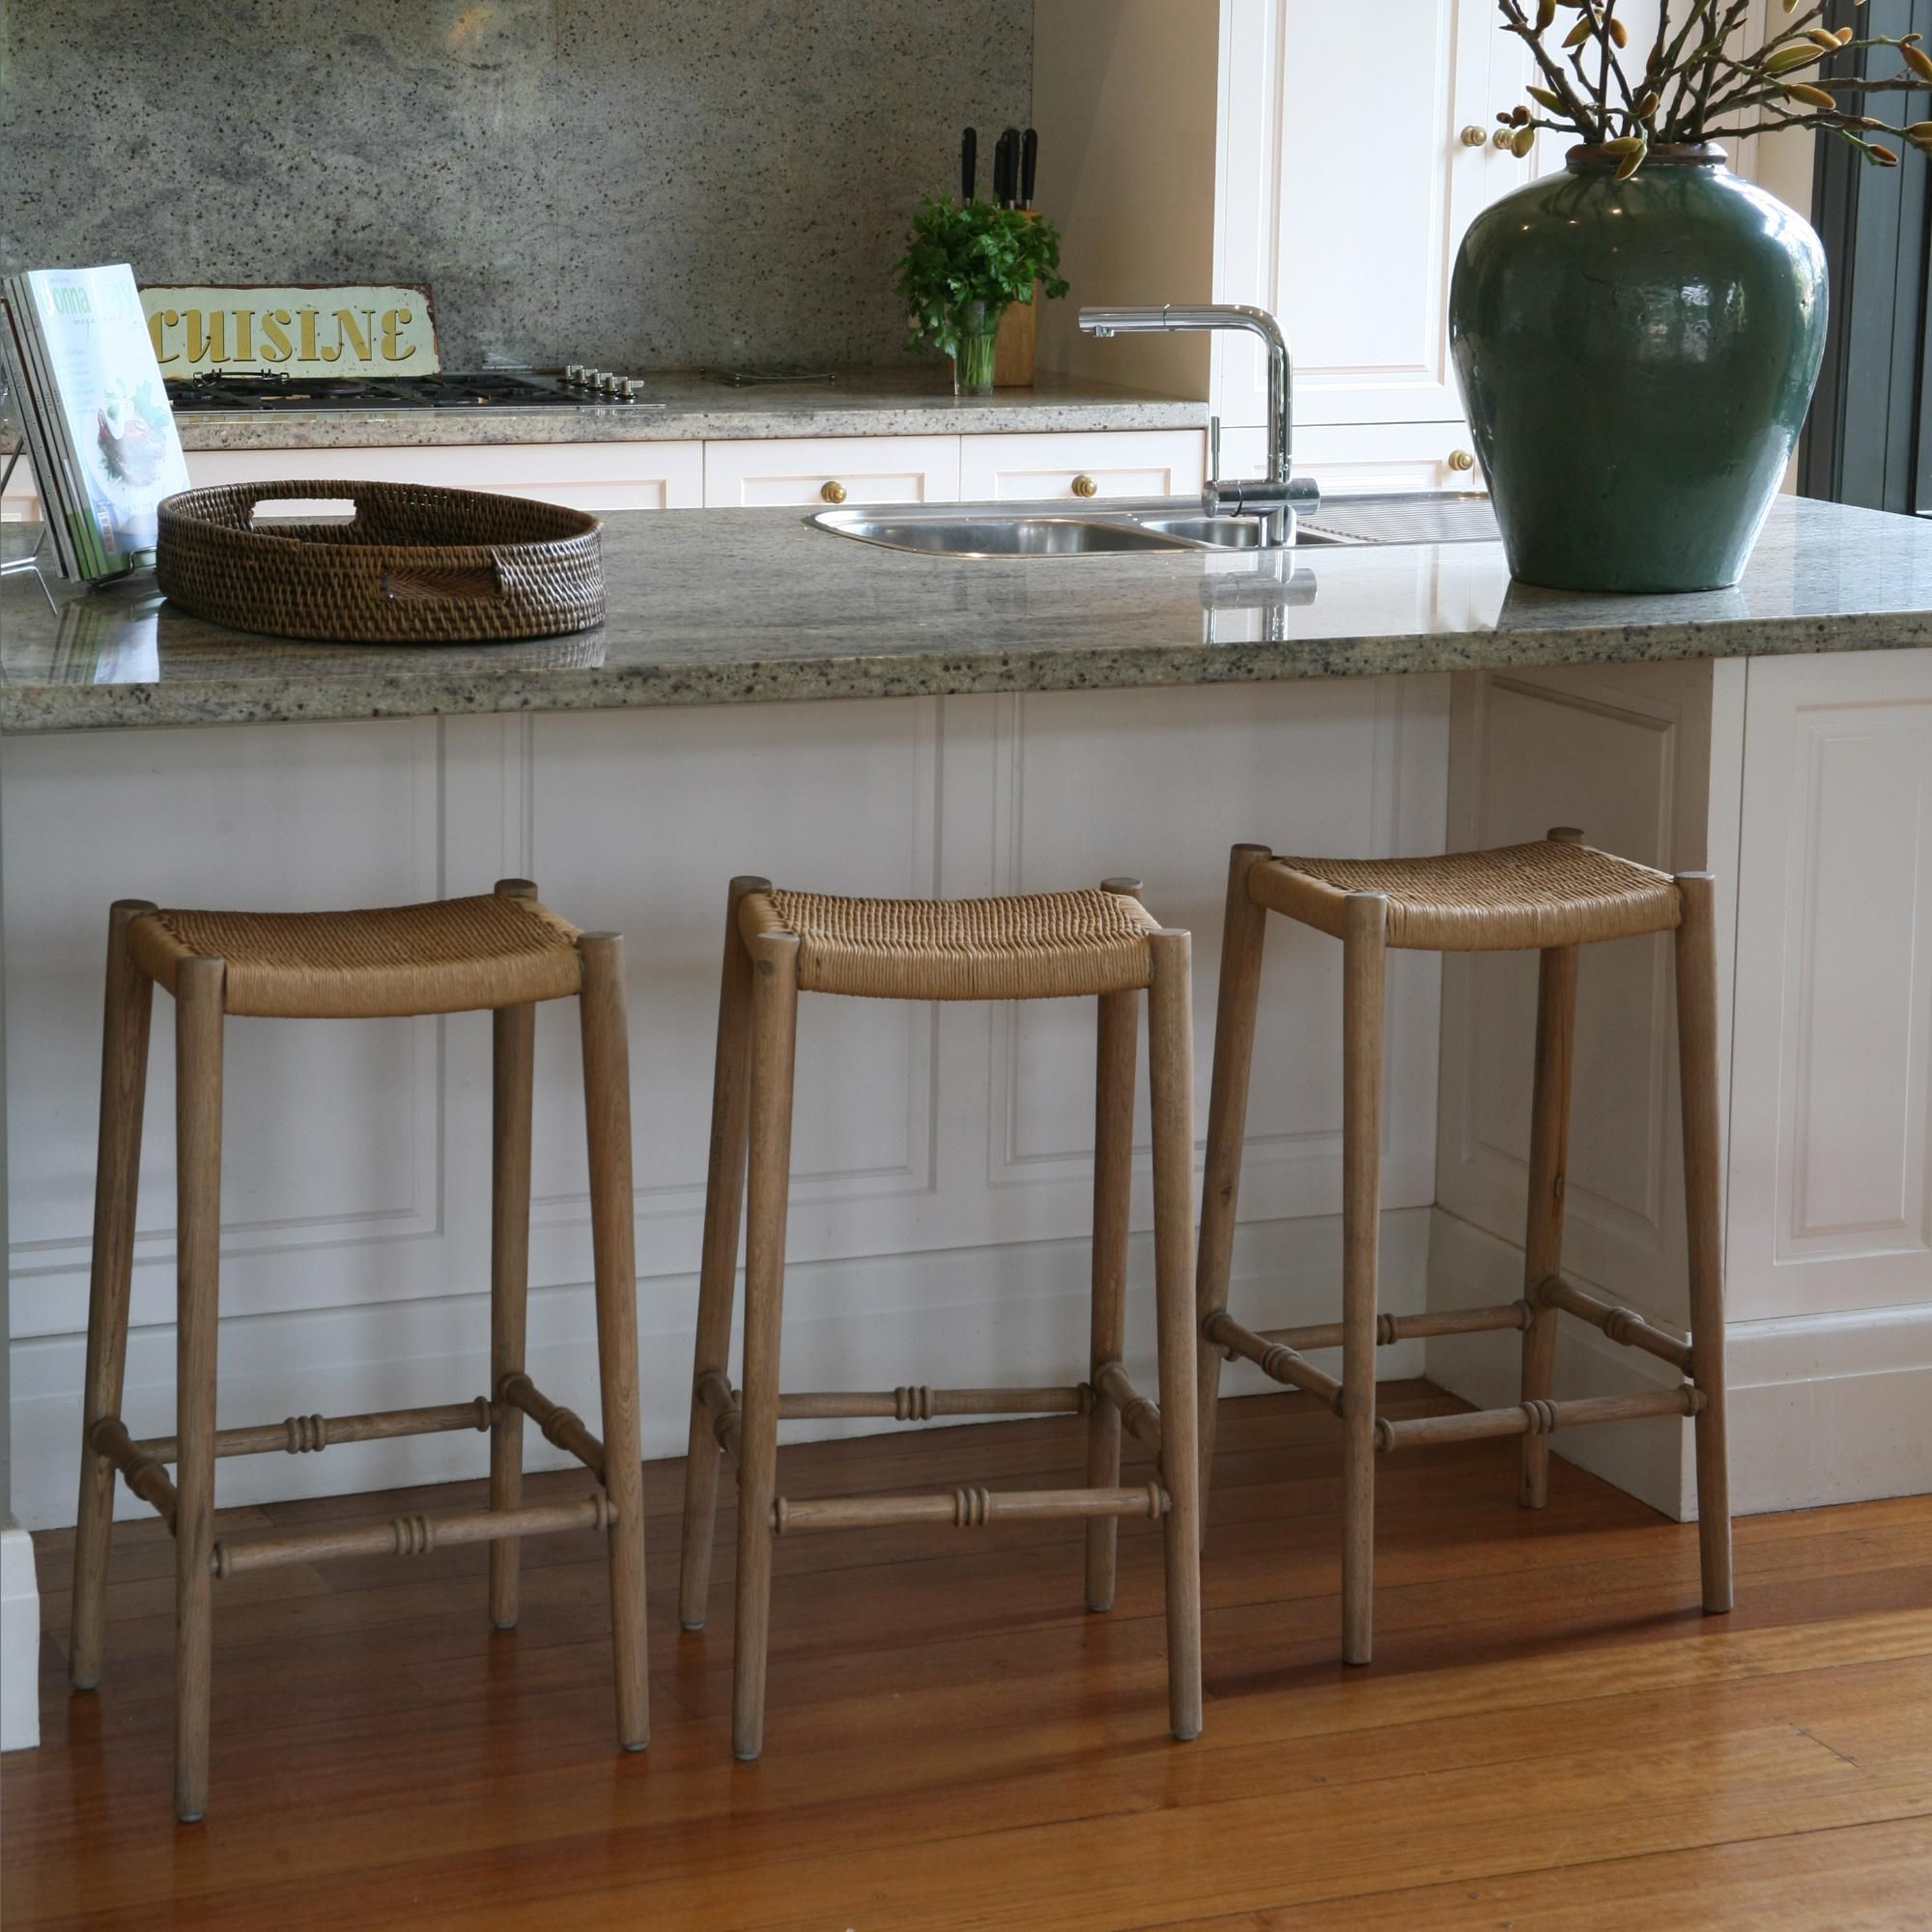 Furniture Unique Kitchen Bar Stools From Bed Bath Beautify Your Seagrass Bar Stools Backless Bar Stools Wicker Bar Stools